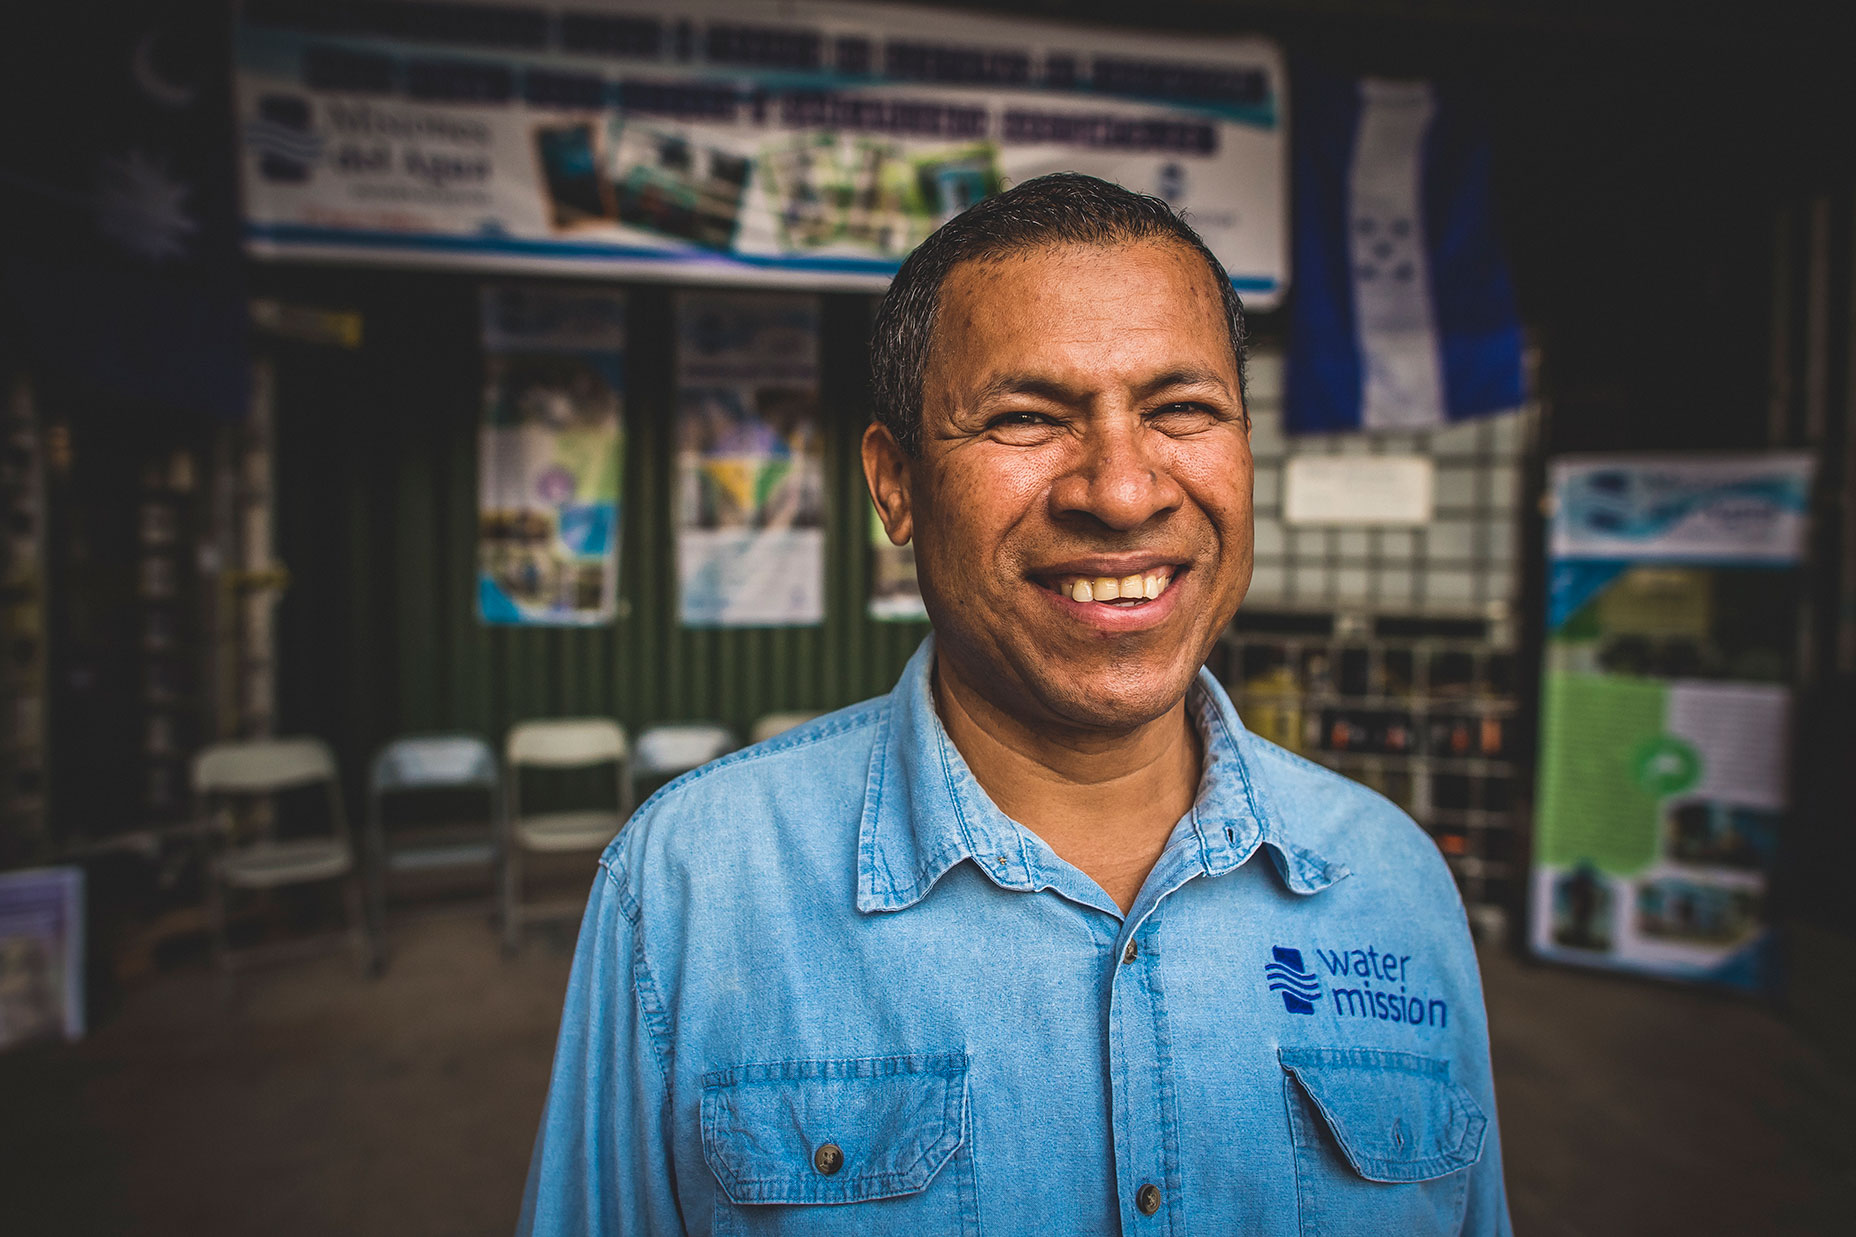 Hector Chacon, Water Mission Honduras Country Director, smiles for the camera.